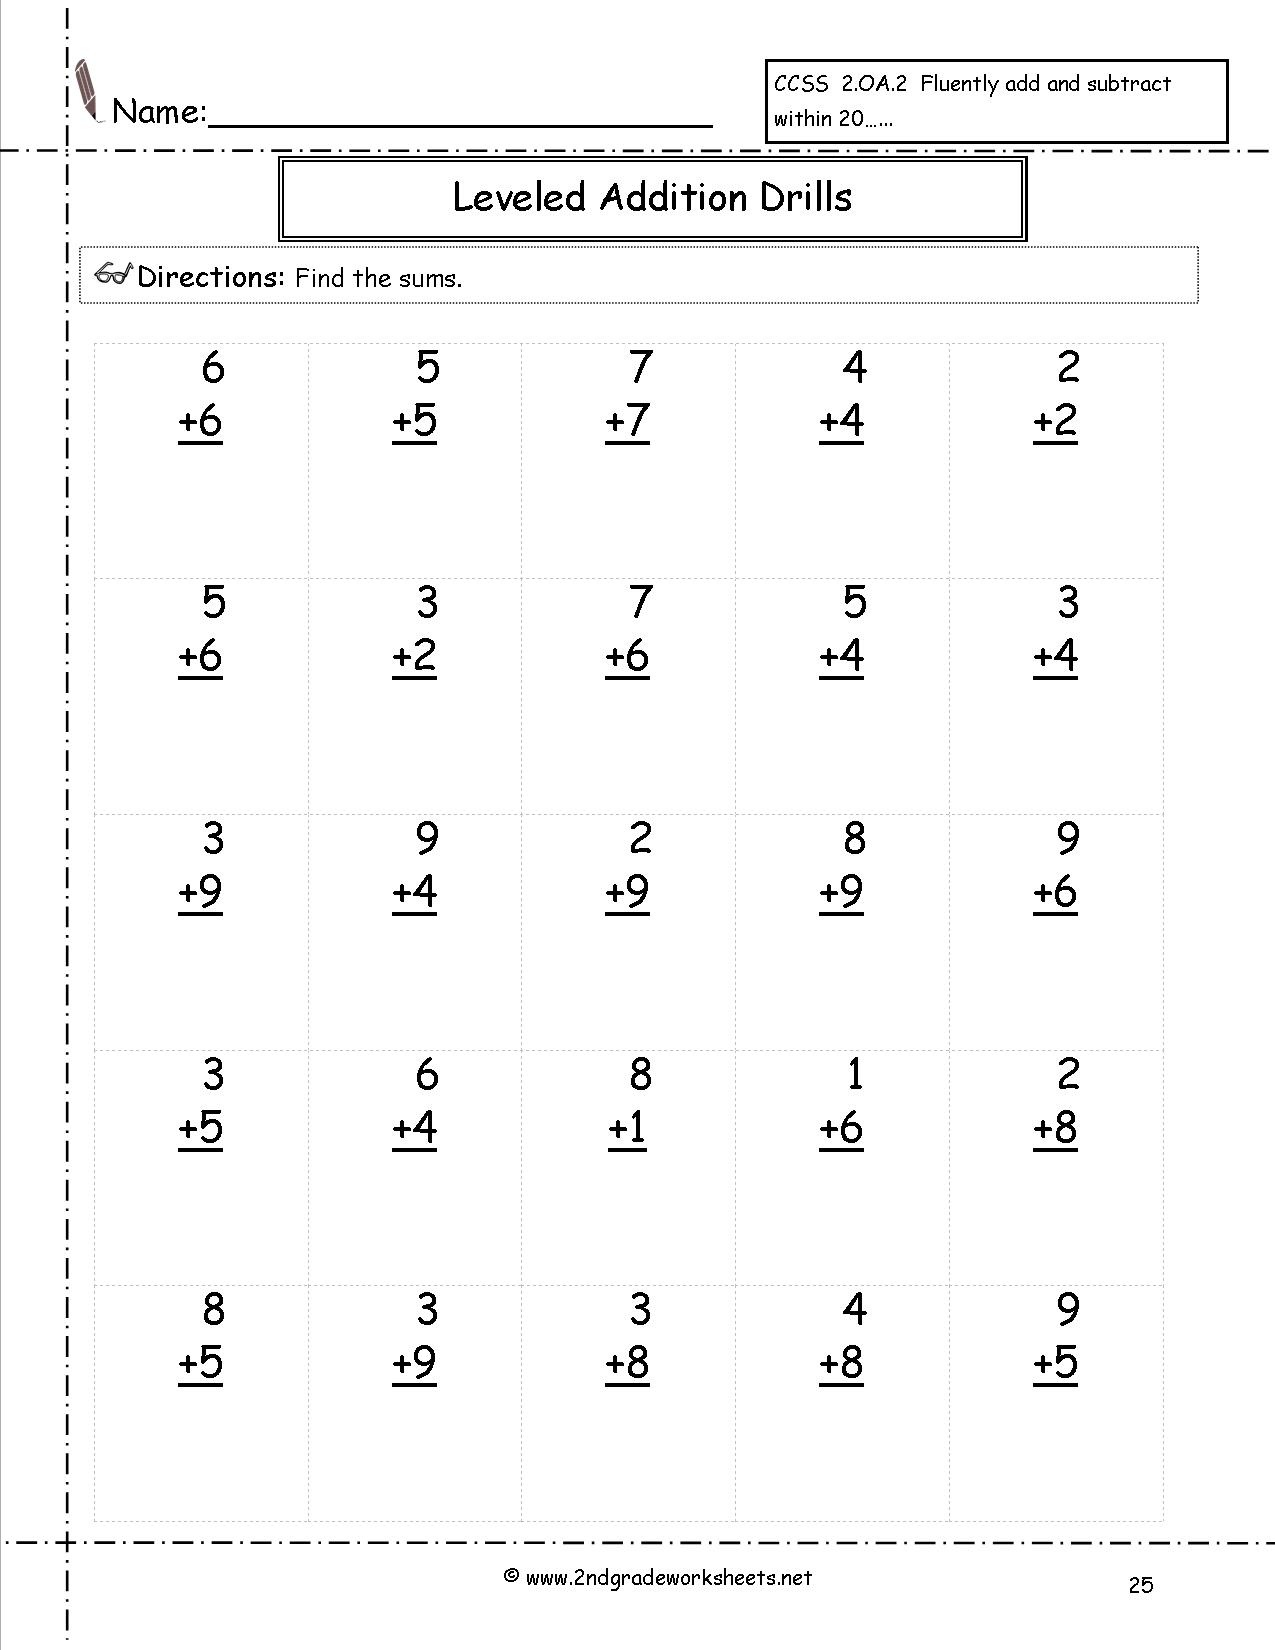 Free Printable Subtraction Worksheets For 2nd Grade